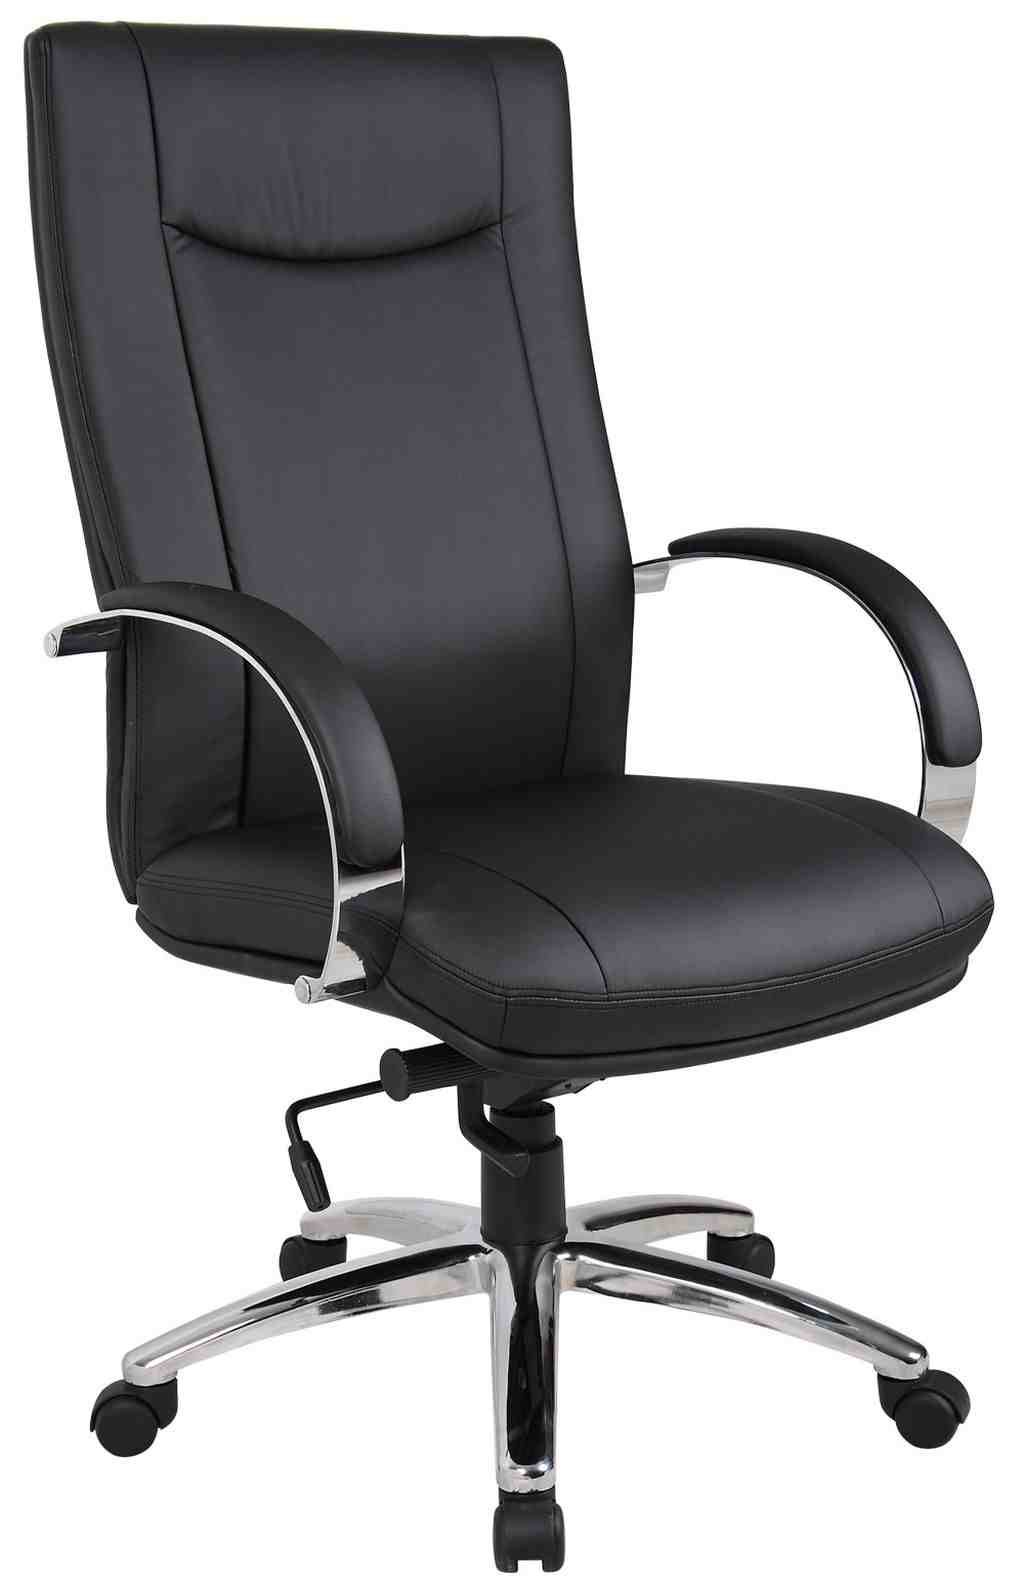 Genuine leather office chair decor ideasdecor ideas for Chair design leather